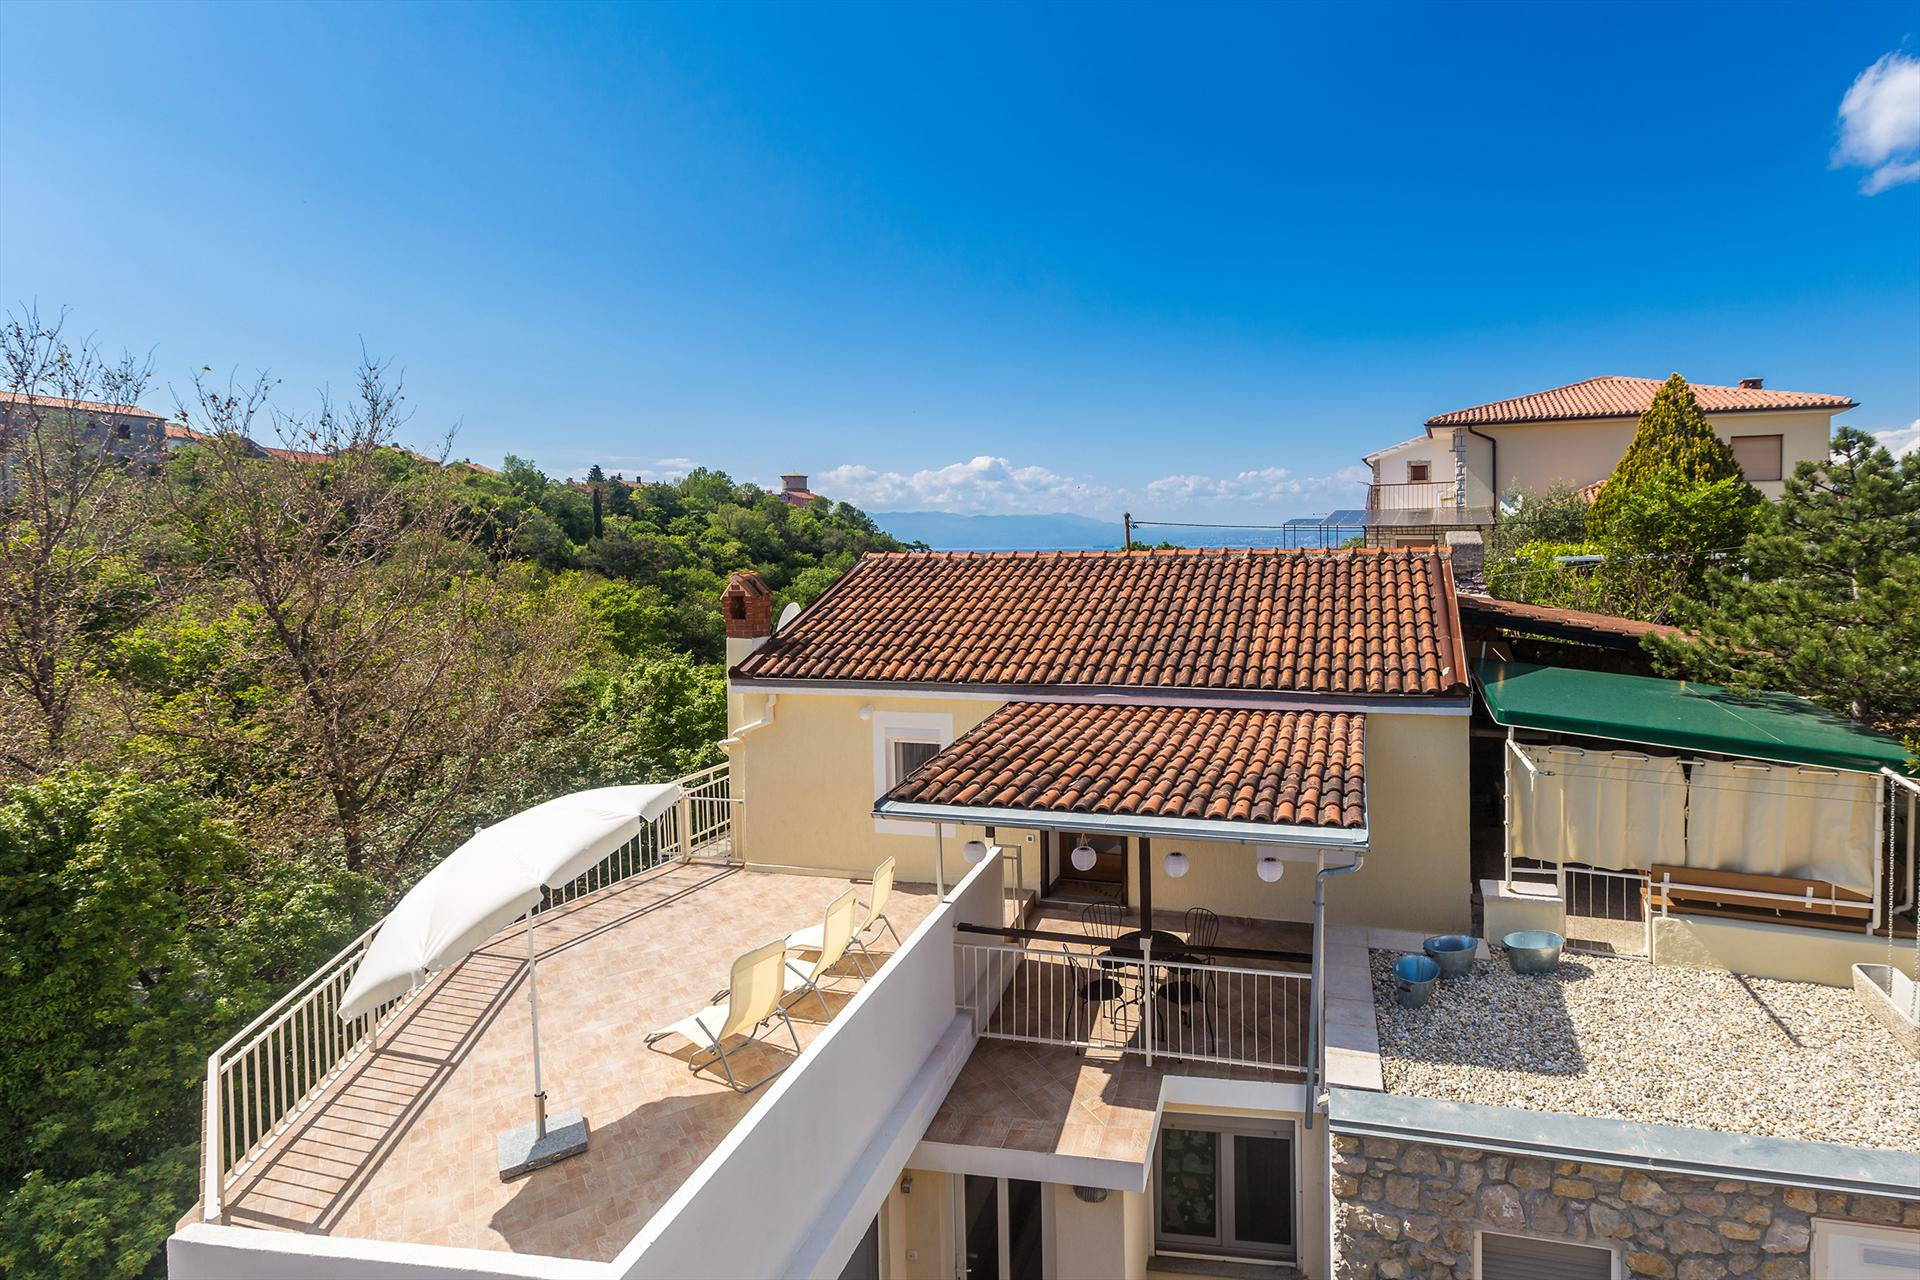 Charming apartment - terrace with nature view and sea view, private parking, wi-fi, Beautiful and classic apartment in Omišalj, Island Krk, Croatia for 4 persons...